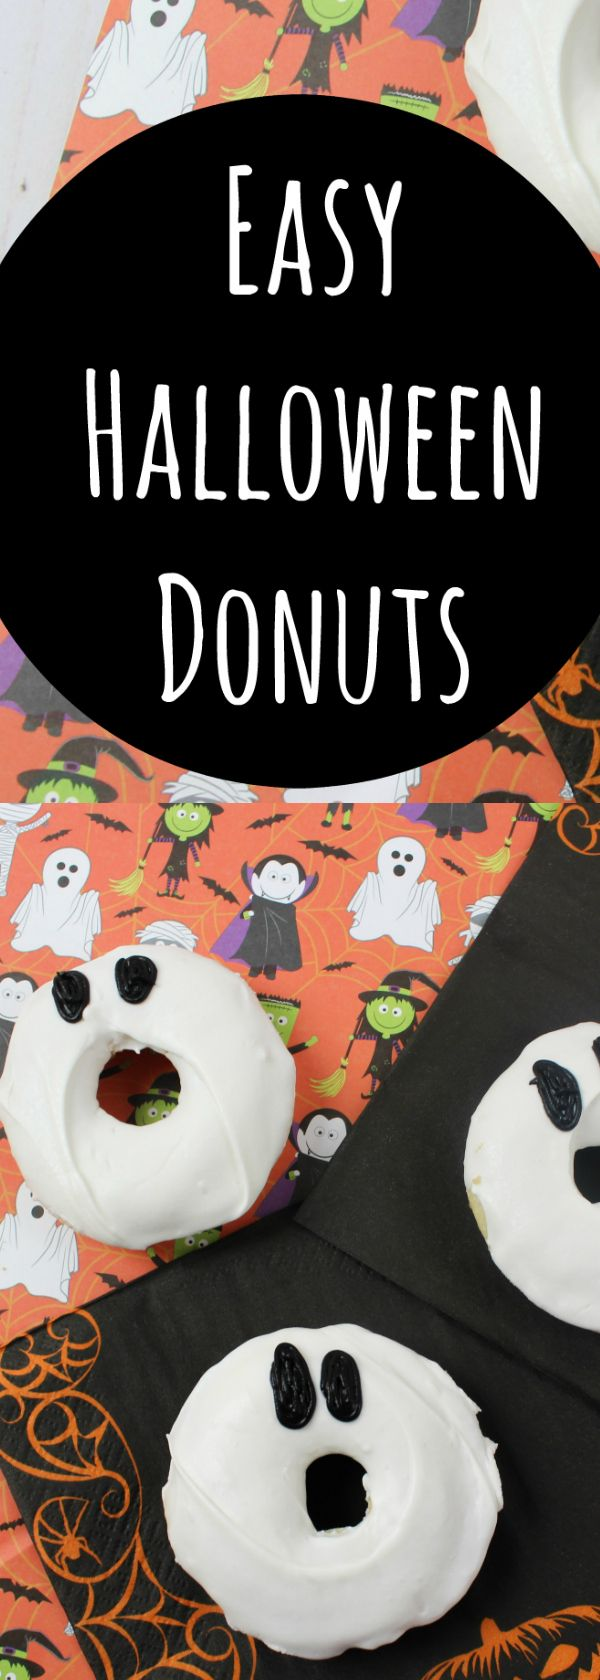 Halloween party food that is easy to make. Halloween Ghost donuts. Doughnous donughts are so easy and Ghosts are perfect for last minute party snacks. Halloween food